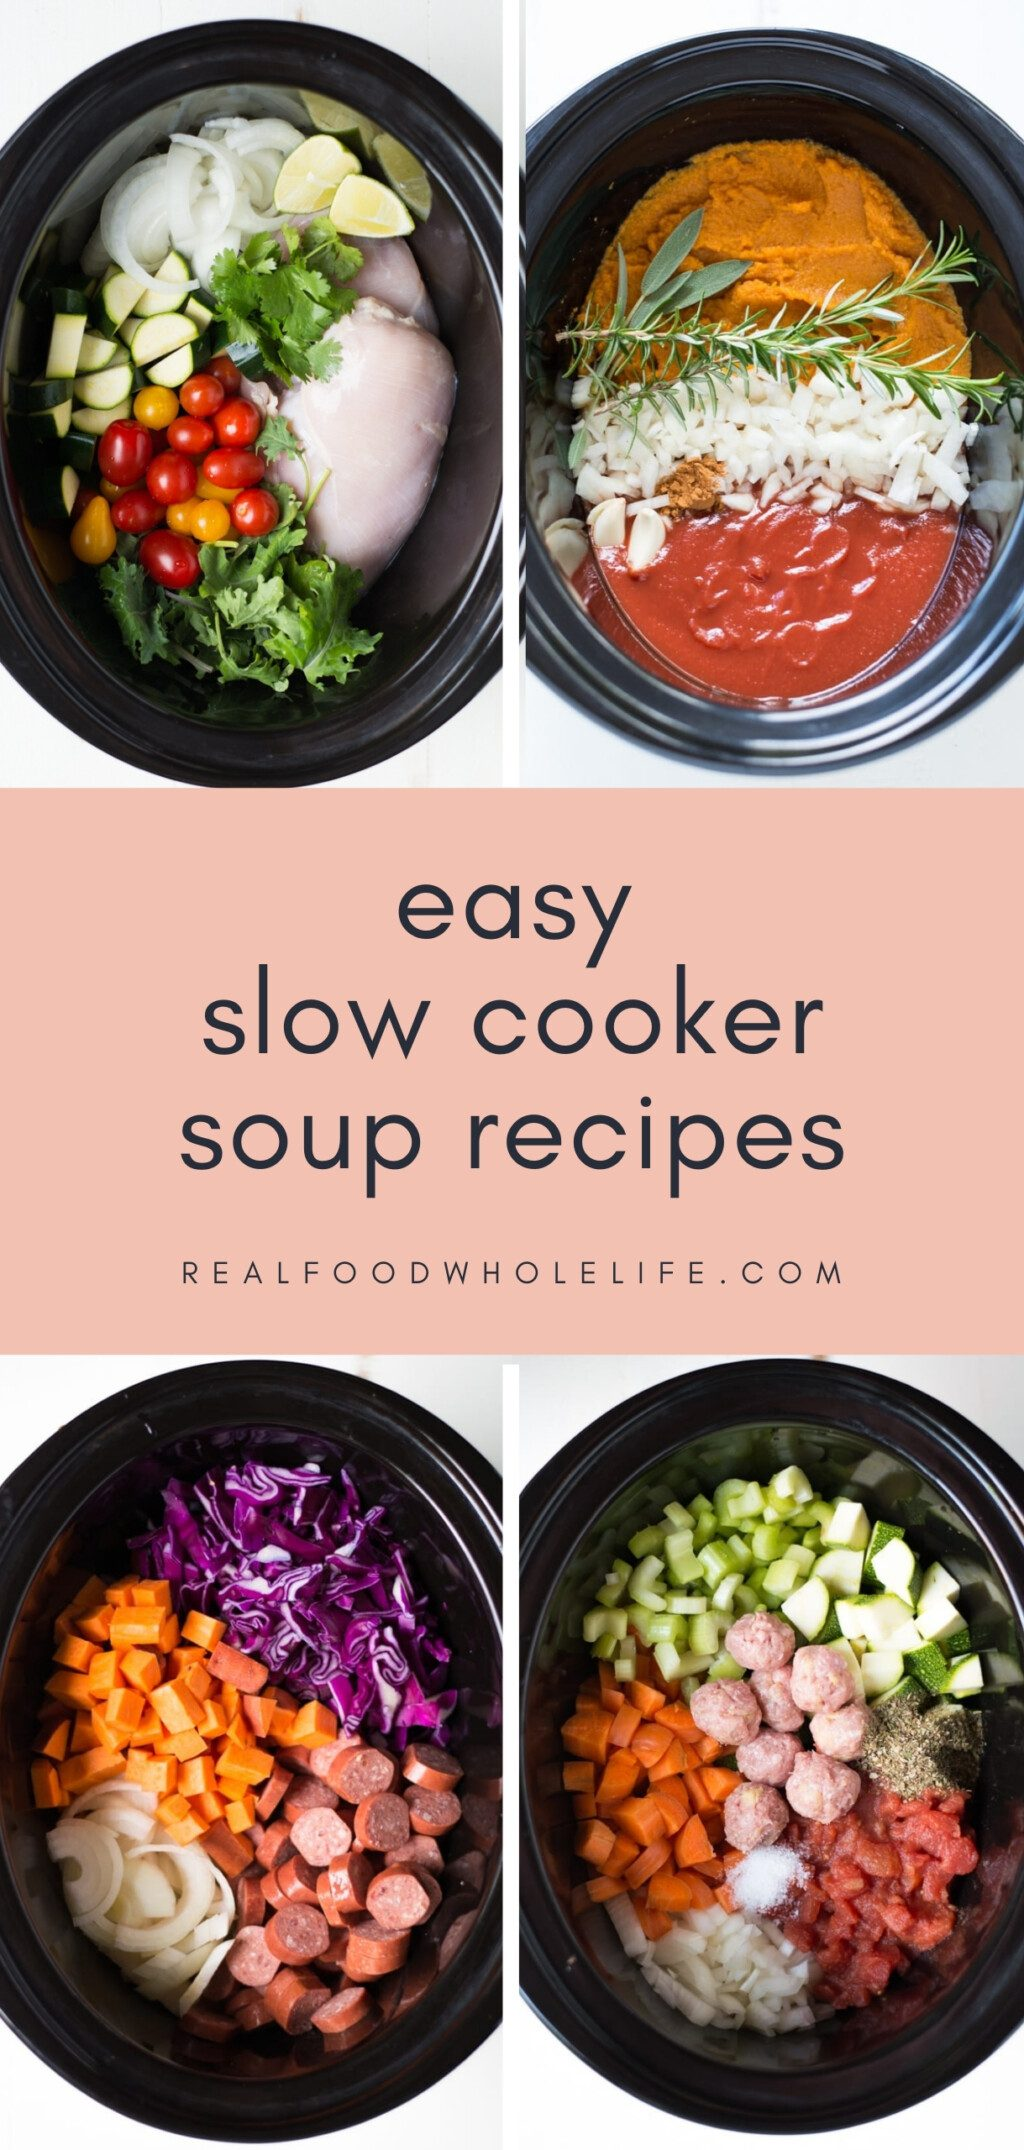 four slow cooker soup recipes shown in black crockpots with pink background